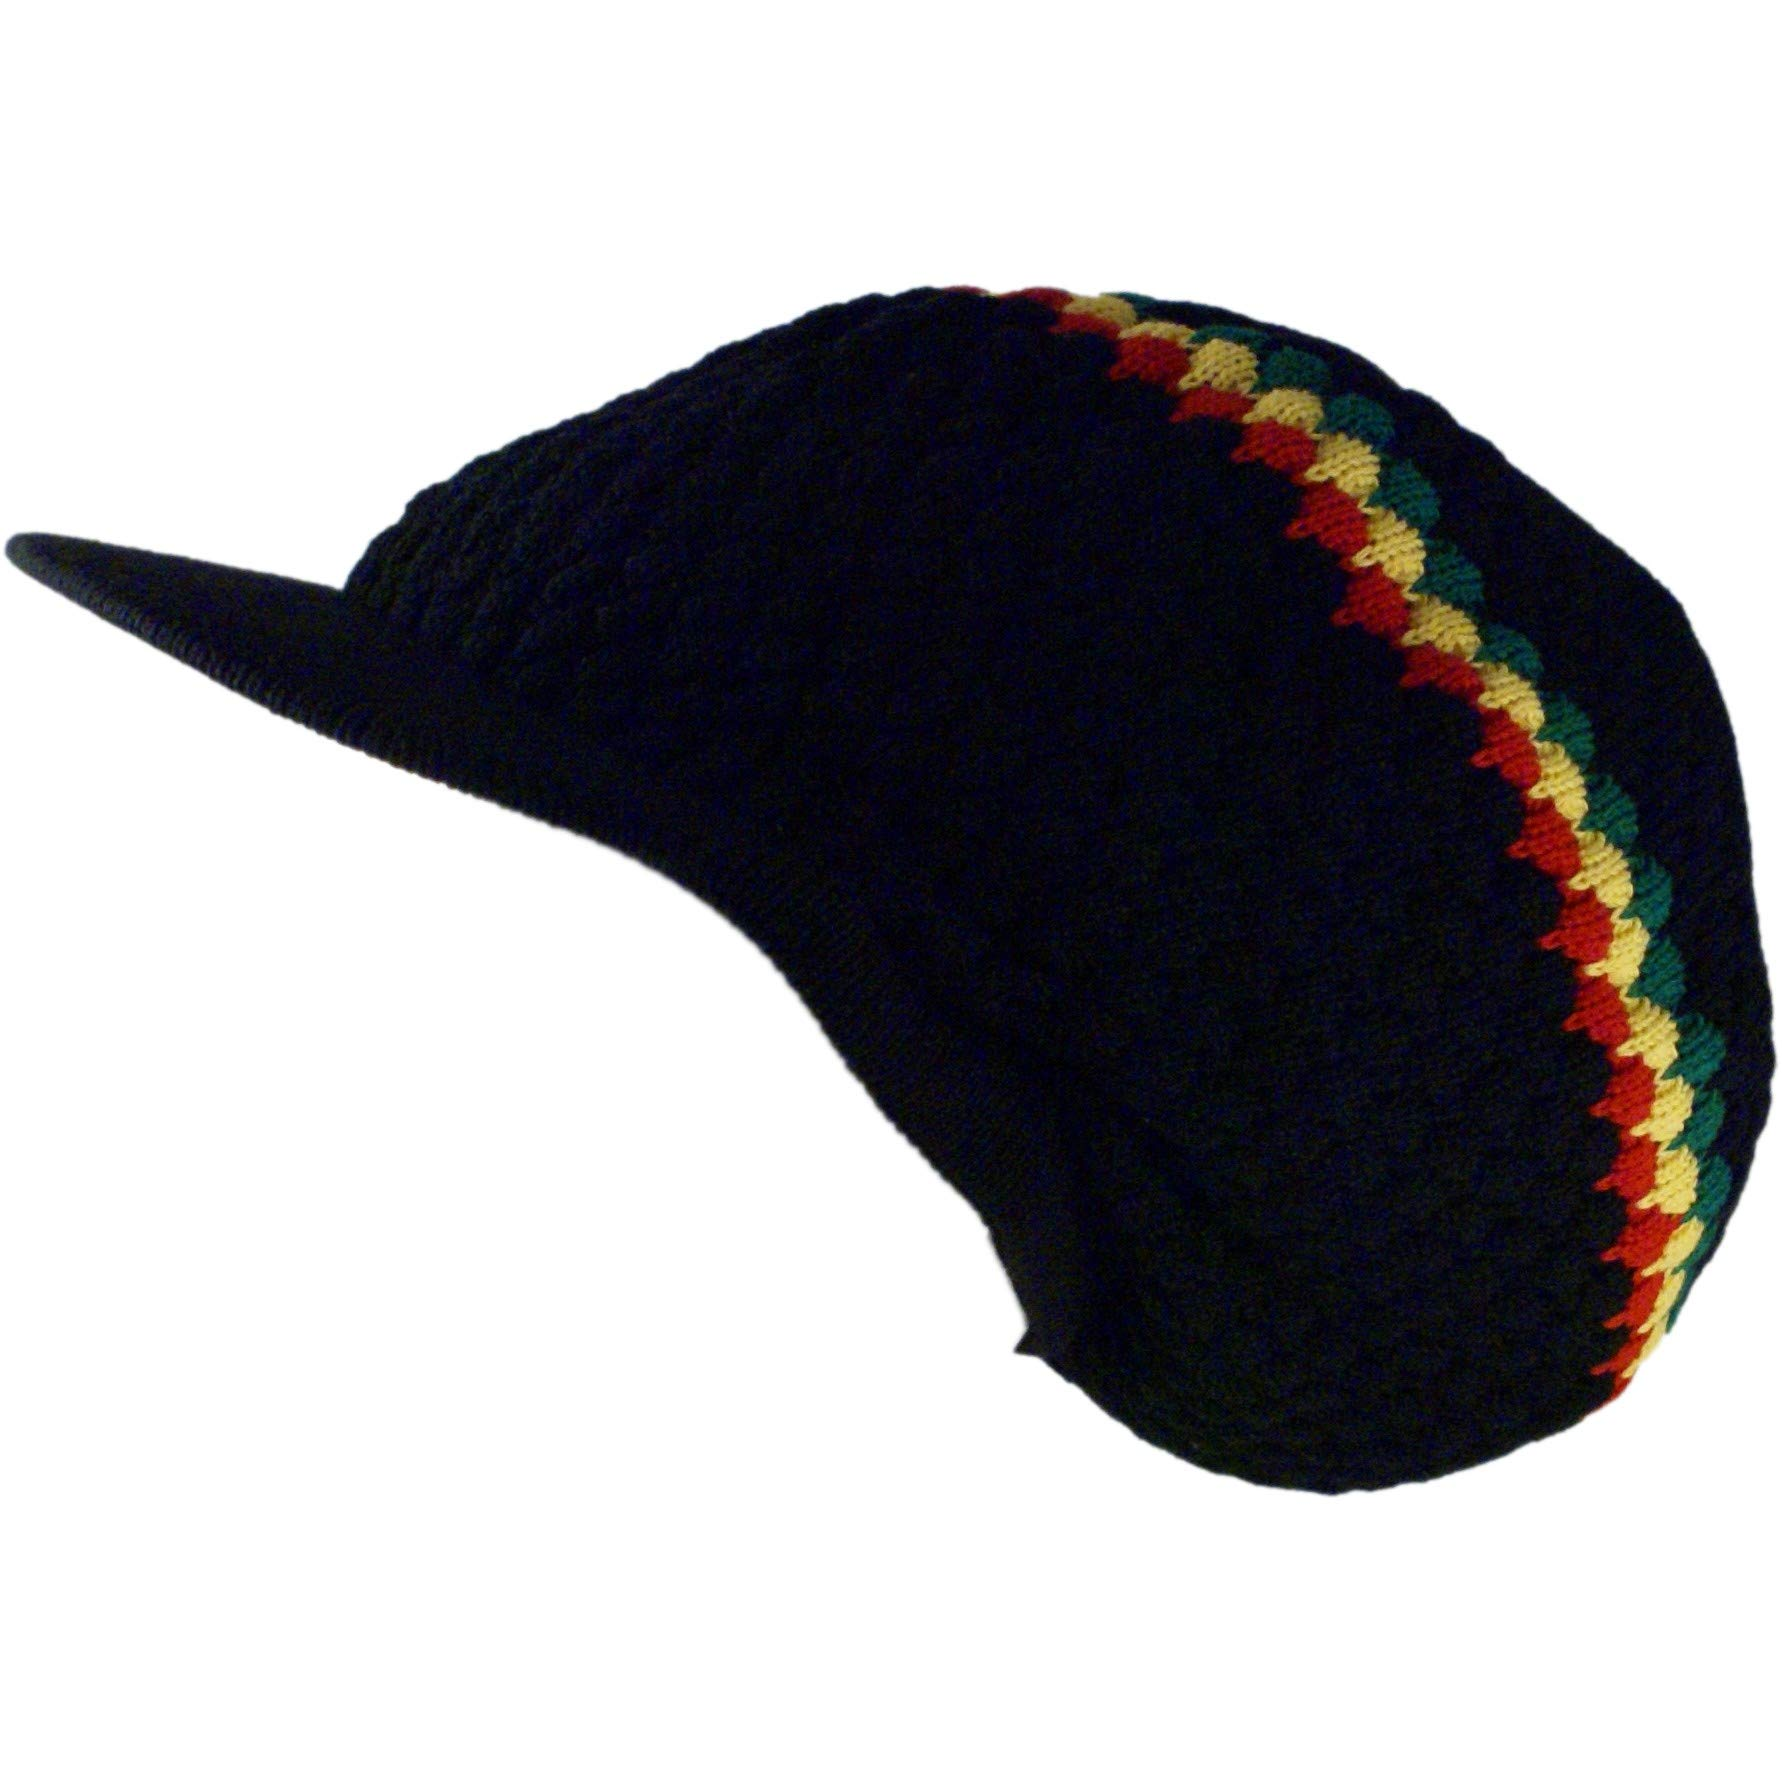 SSK Rasta Knit Tam Hat Dreadlock Cap (Large Round Blk/Red/YEL/Grn w/Brim) by Shoe String King